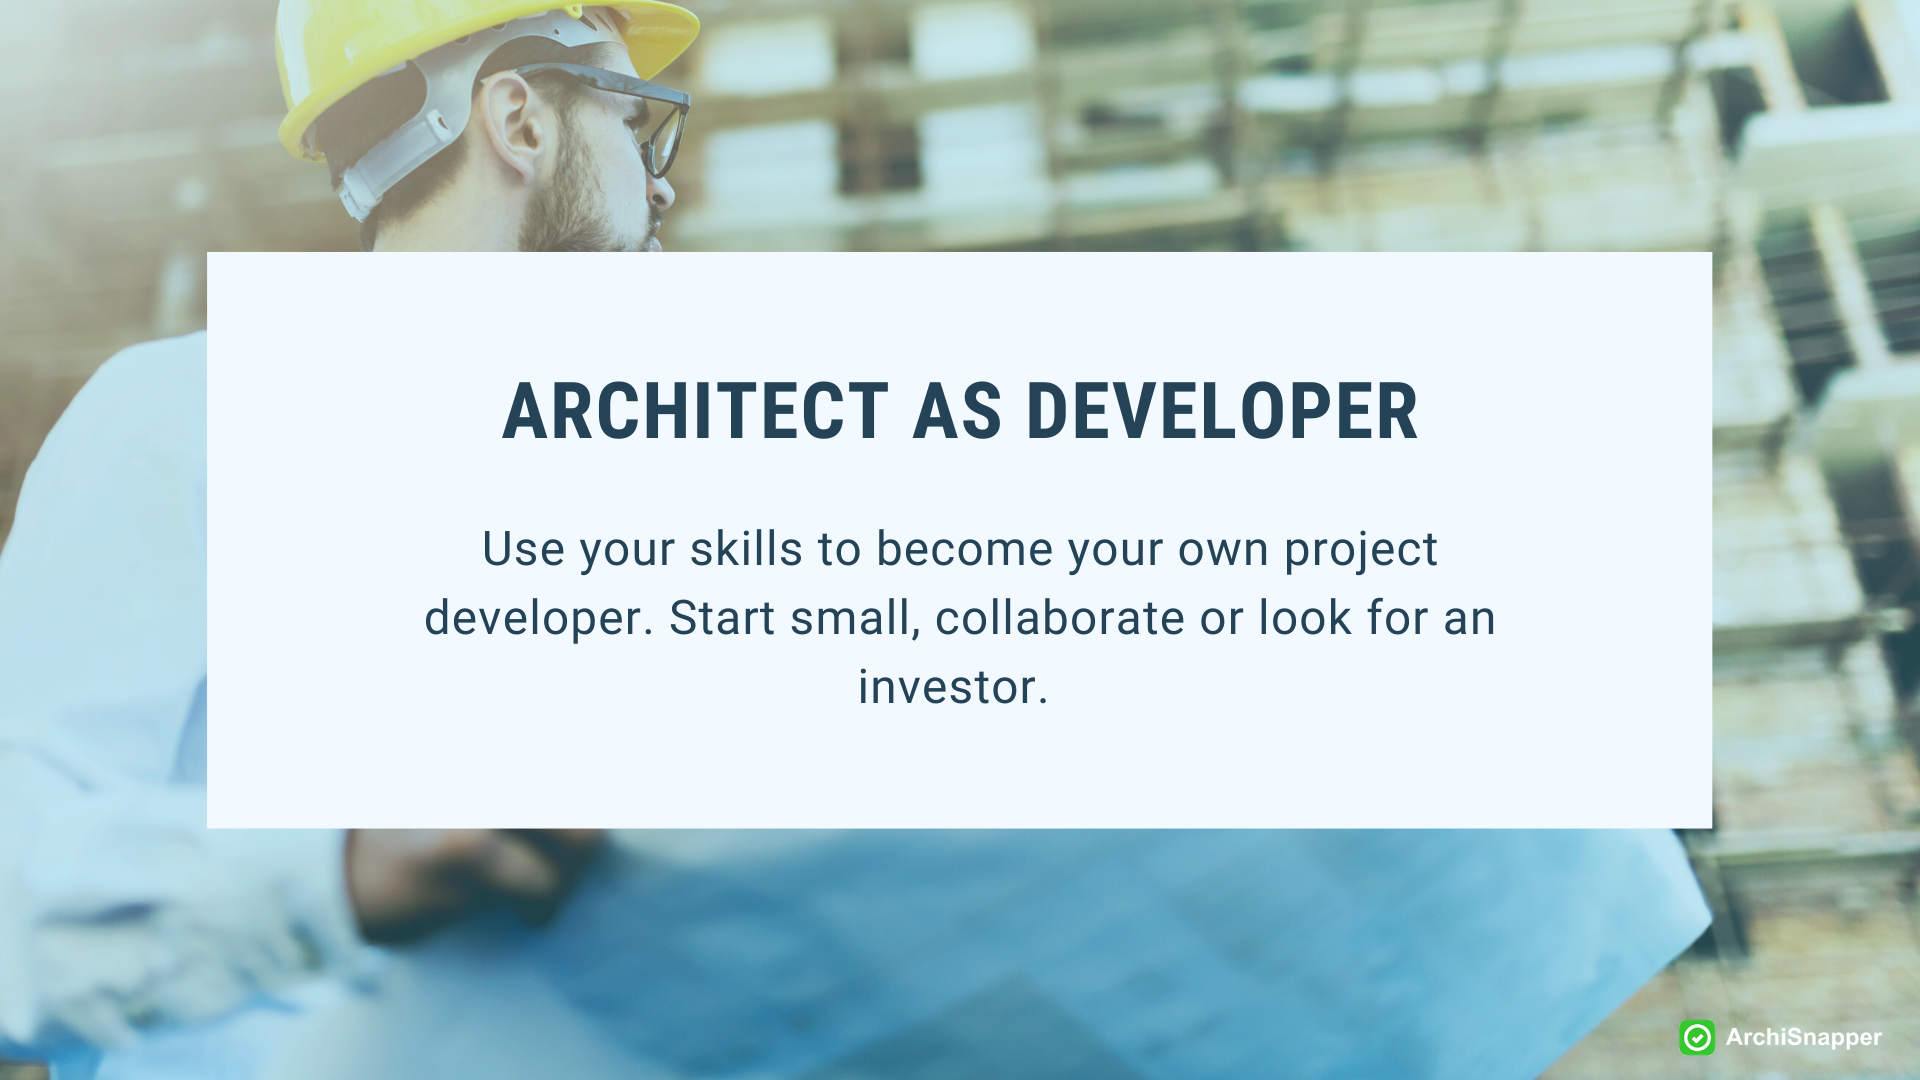 The architect as developer | ArchiSnapper